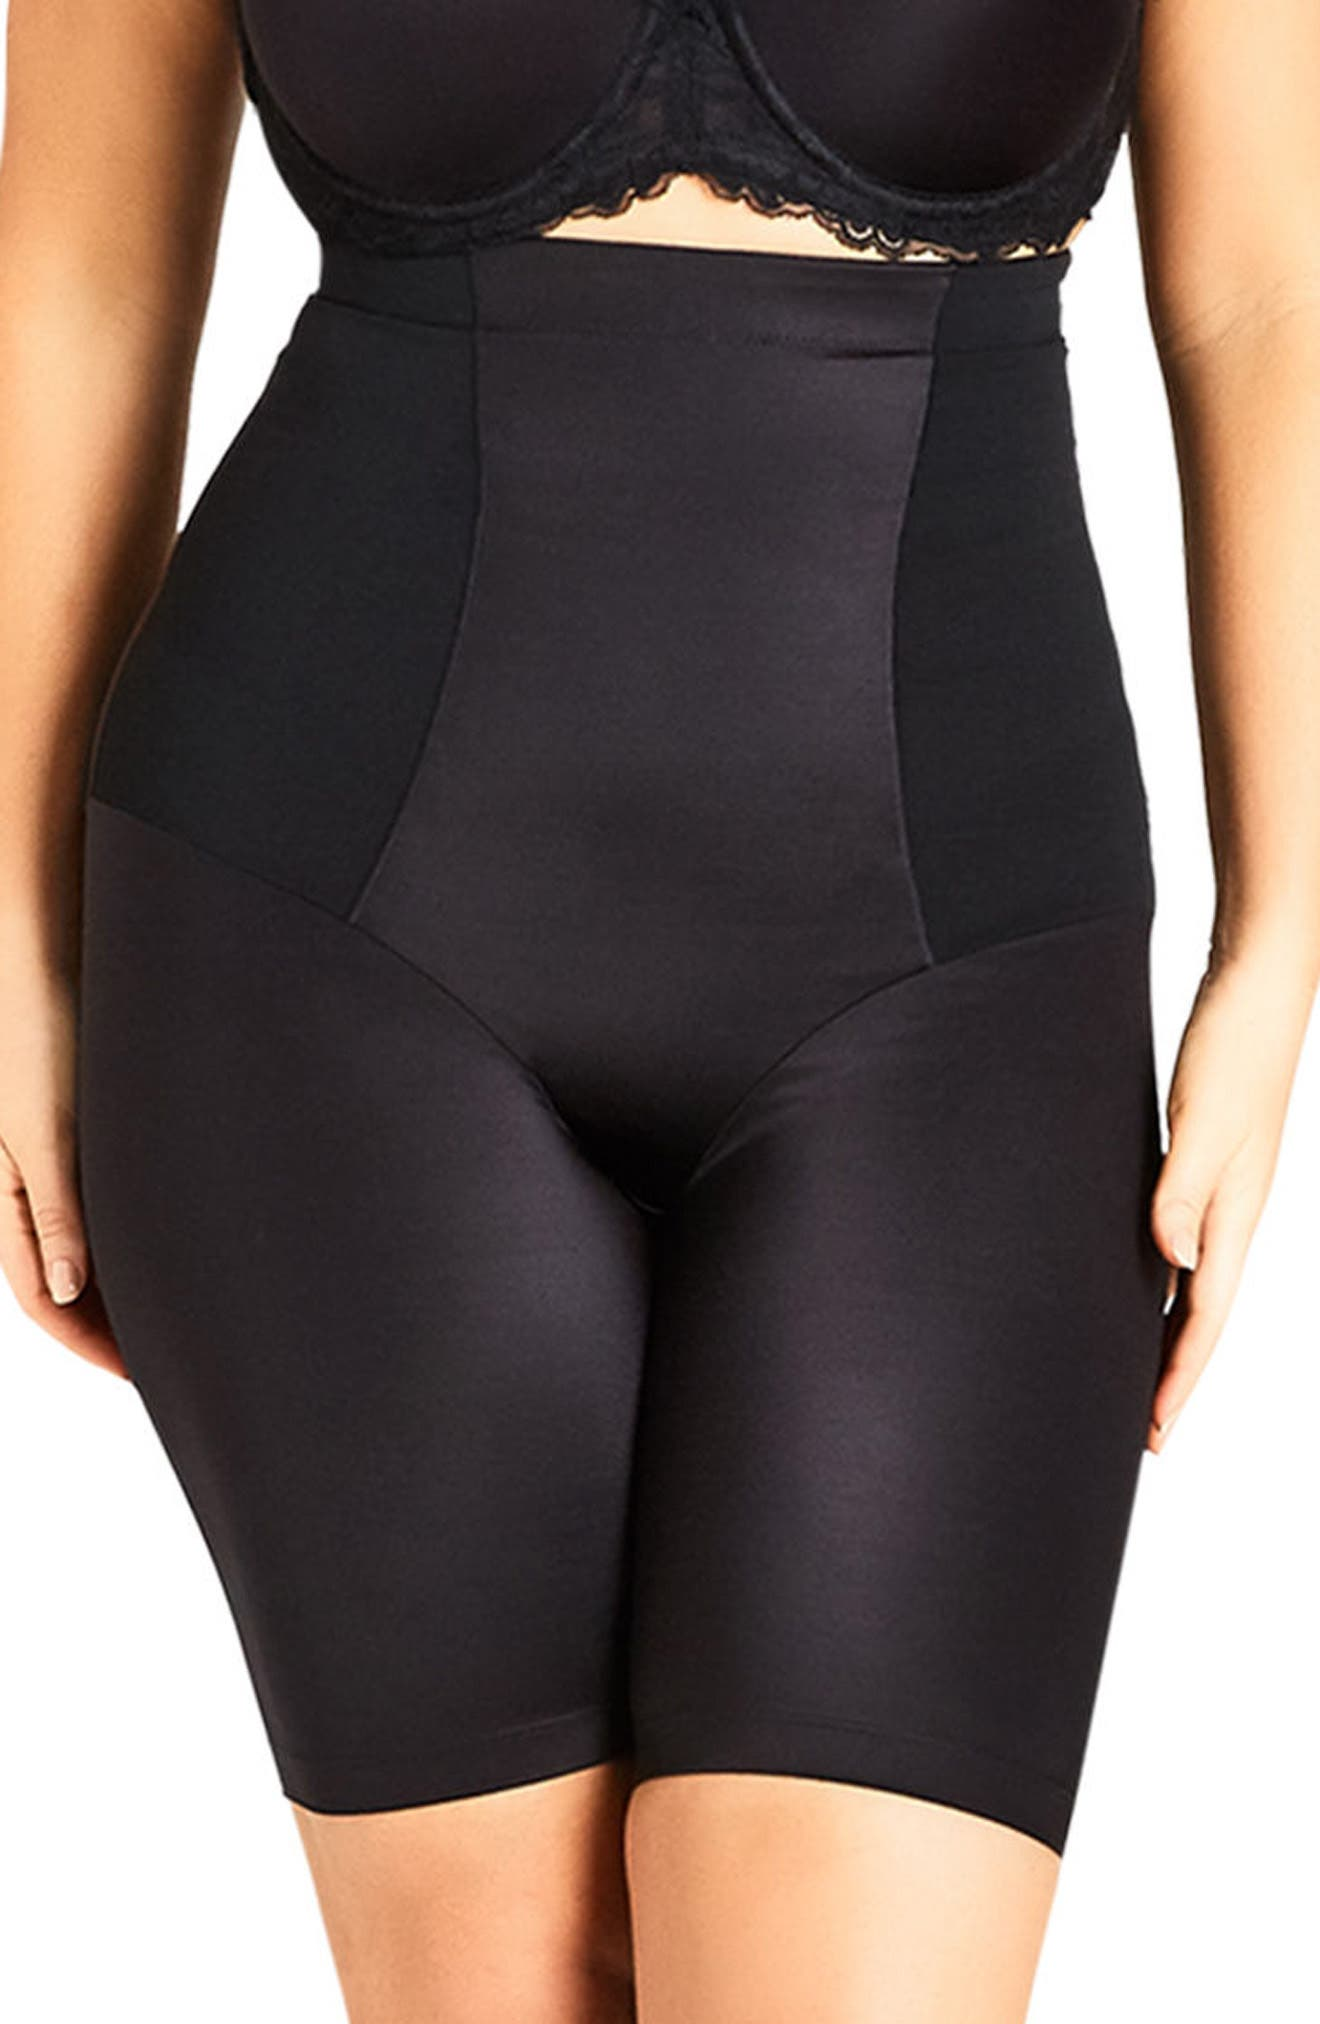 Alternate Image 1 Selected - City Chic Smooth & Chic Thigh Shaper (Plus Size)